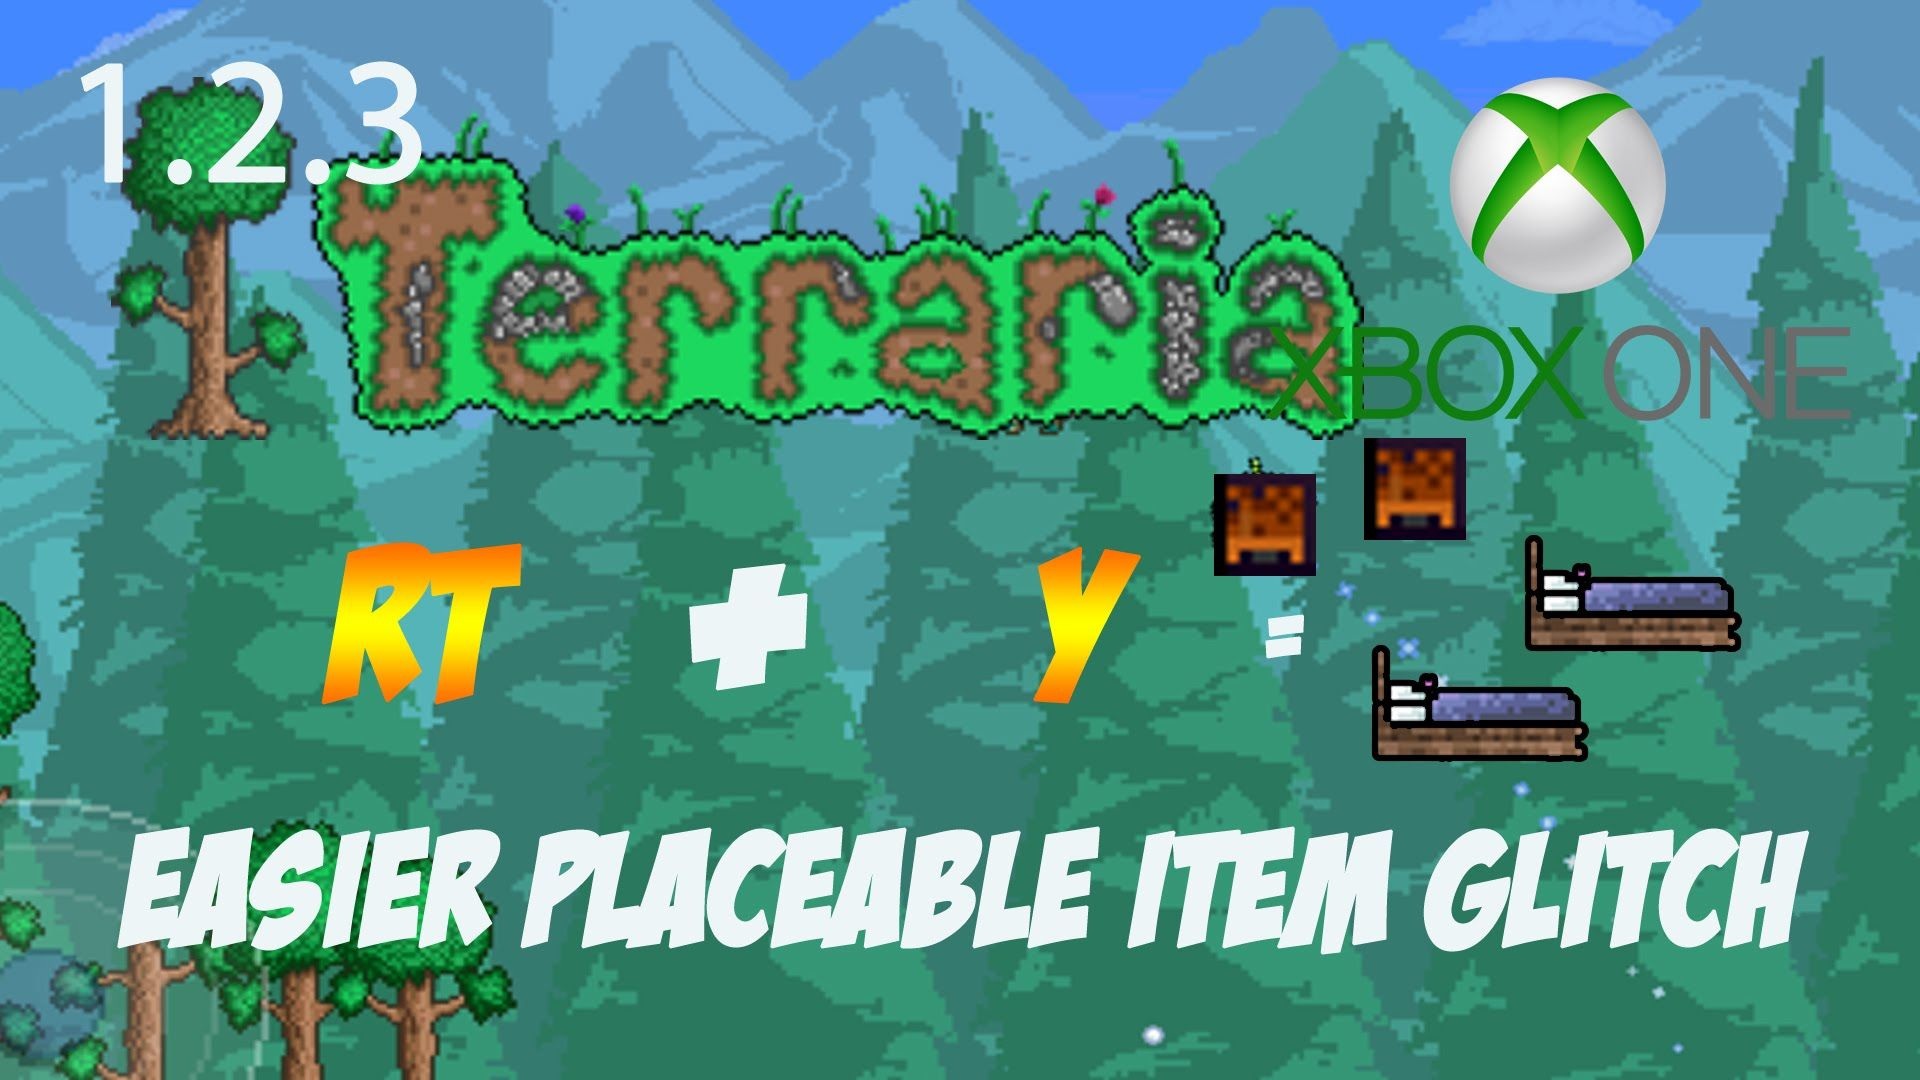 Terraria Duplication Glitch Solo Xbox One - All Placeable Items